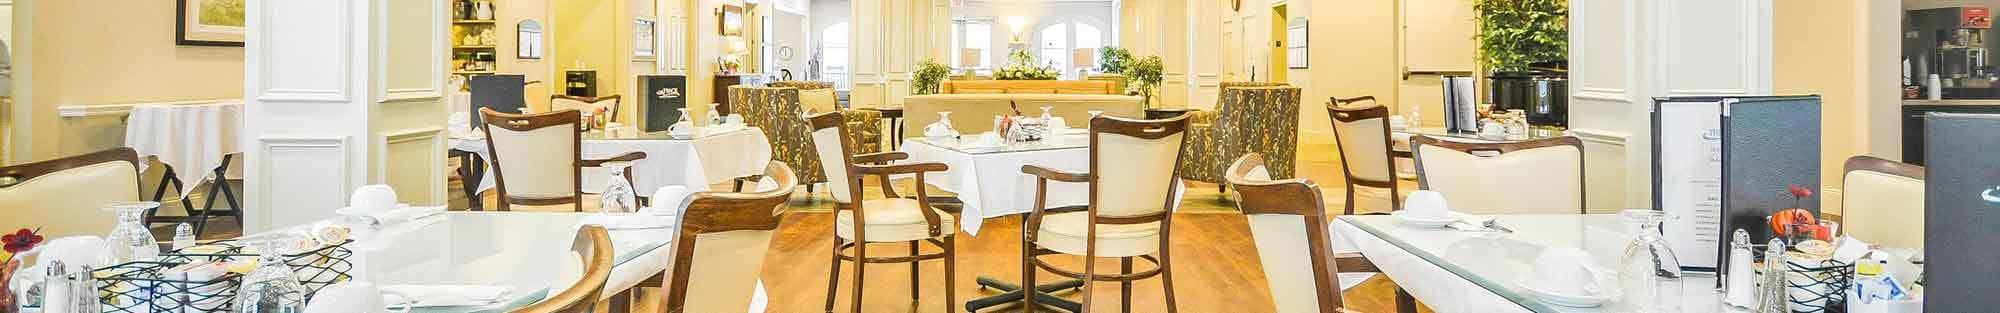 Senior living options at the senior living community in Covington